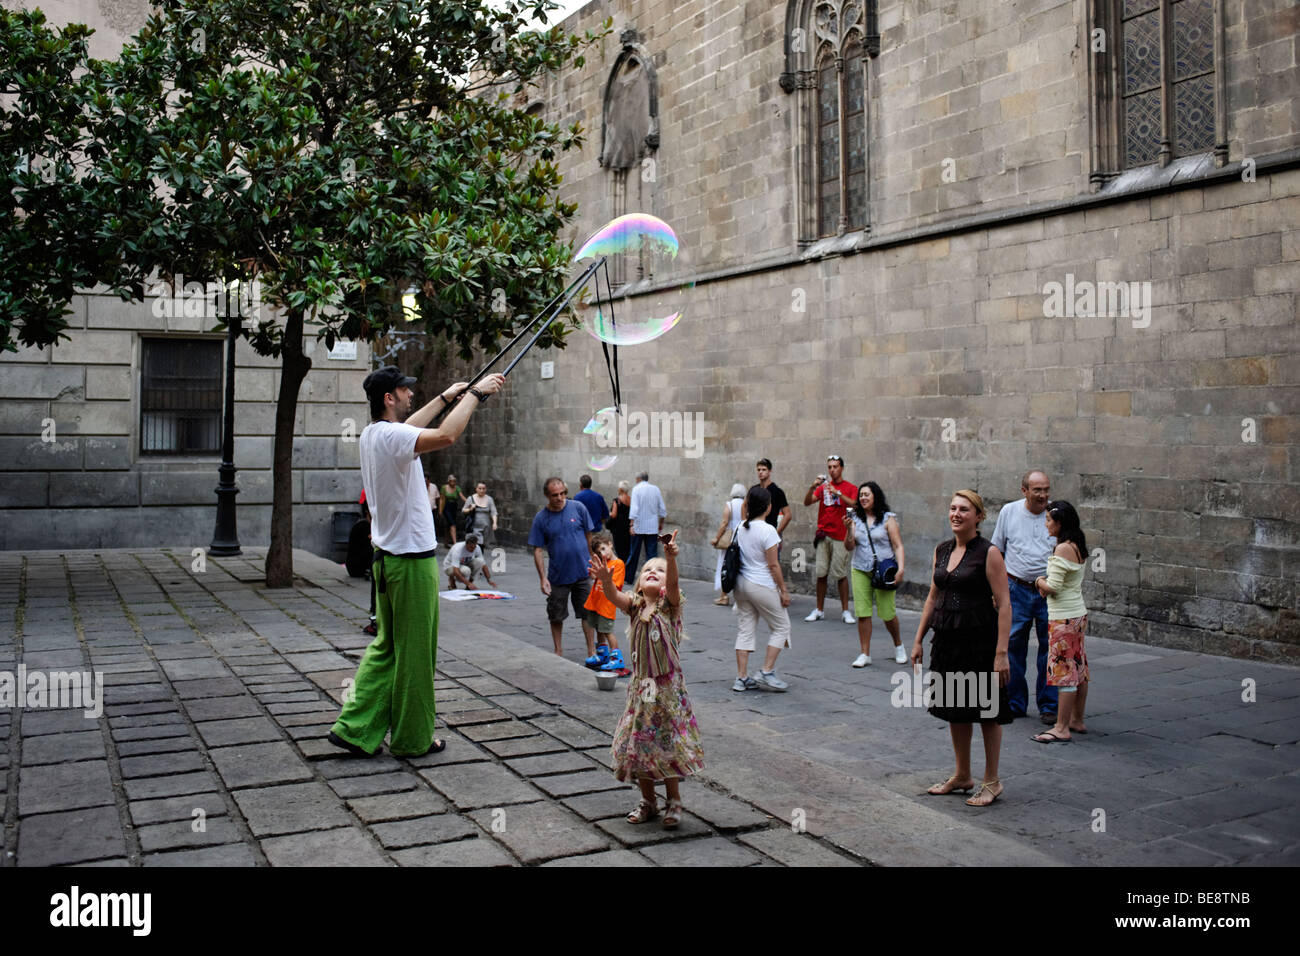 Street artist blowing large bubbles. Barri Gotic. Barcelona. Spain - Stock Image